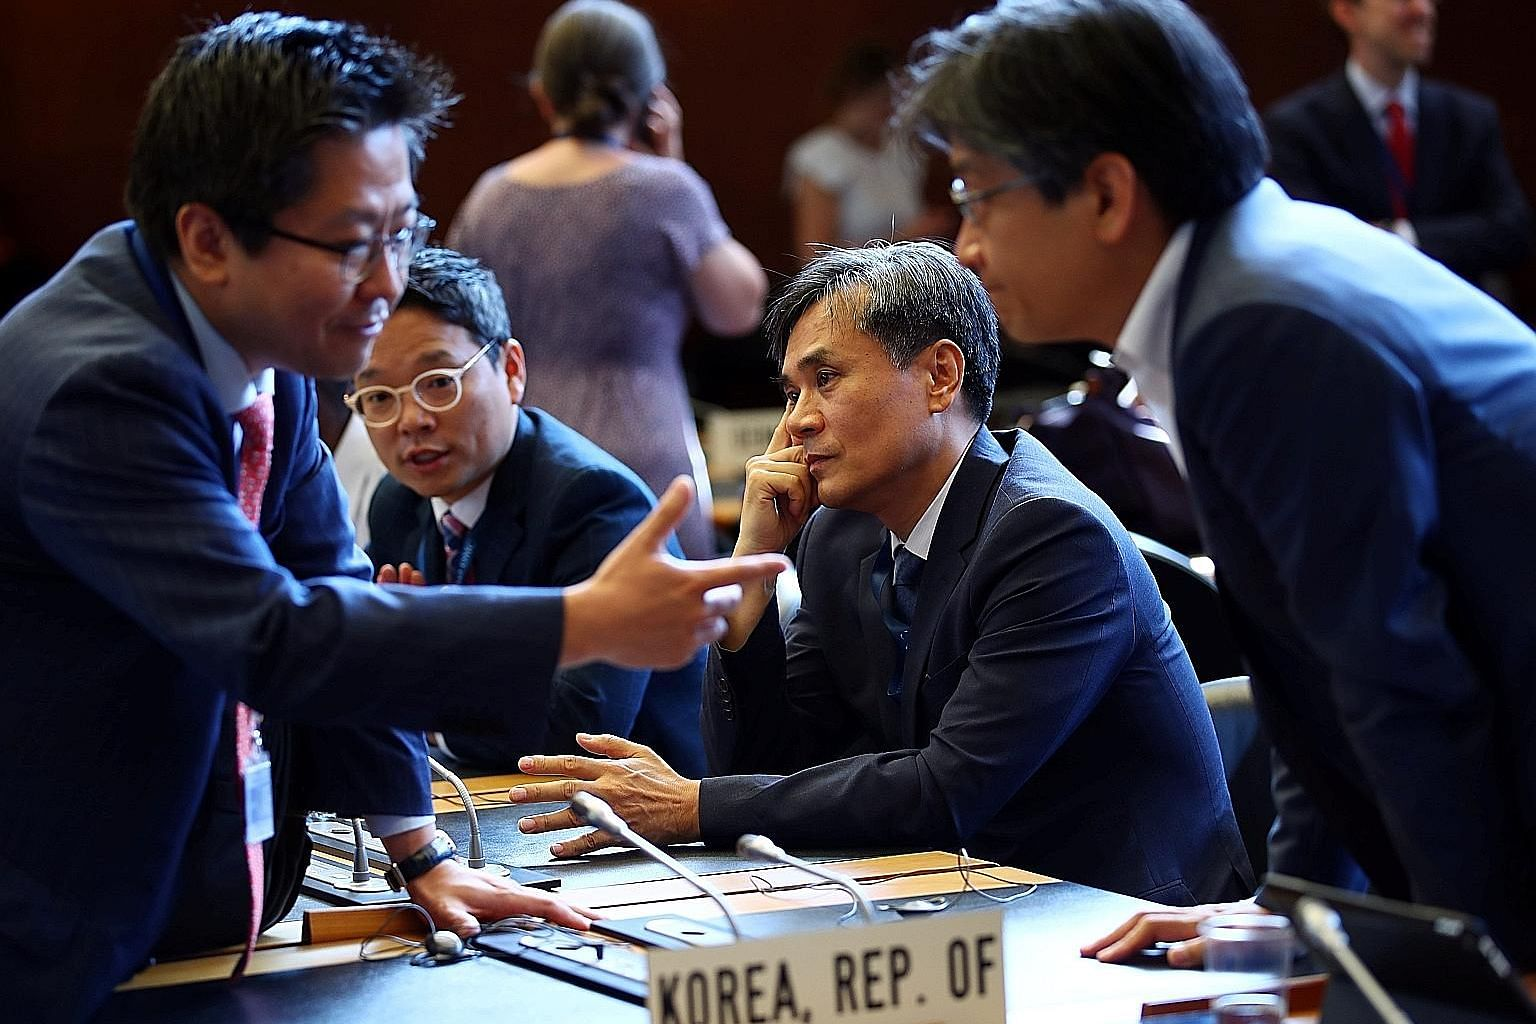 South Korea Deputy Trade Minister Kim Seung-ho (centre) at the WTO General Council meeting yesterday in Geneva, Switzerland, where Seoul argued that Japan's trade measures amounted to political retaliation over a spat on wartime labour, given that th